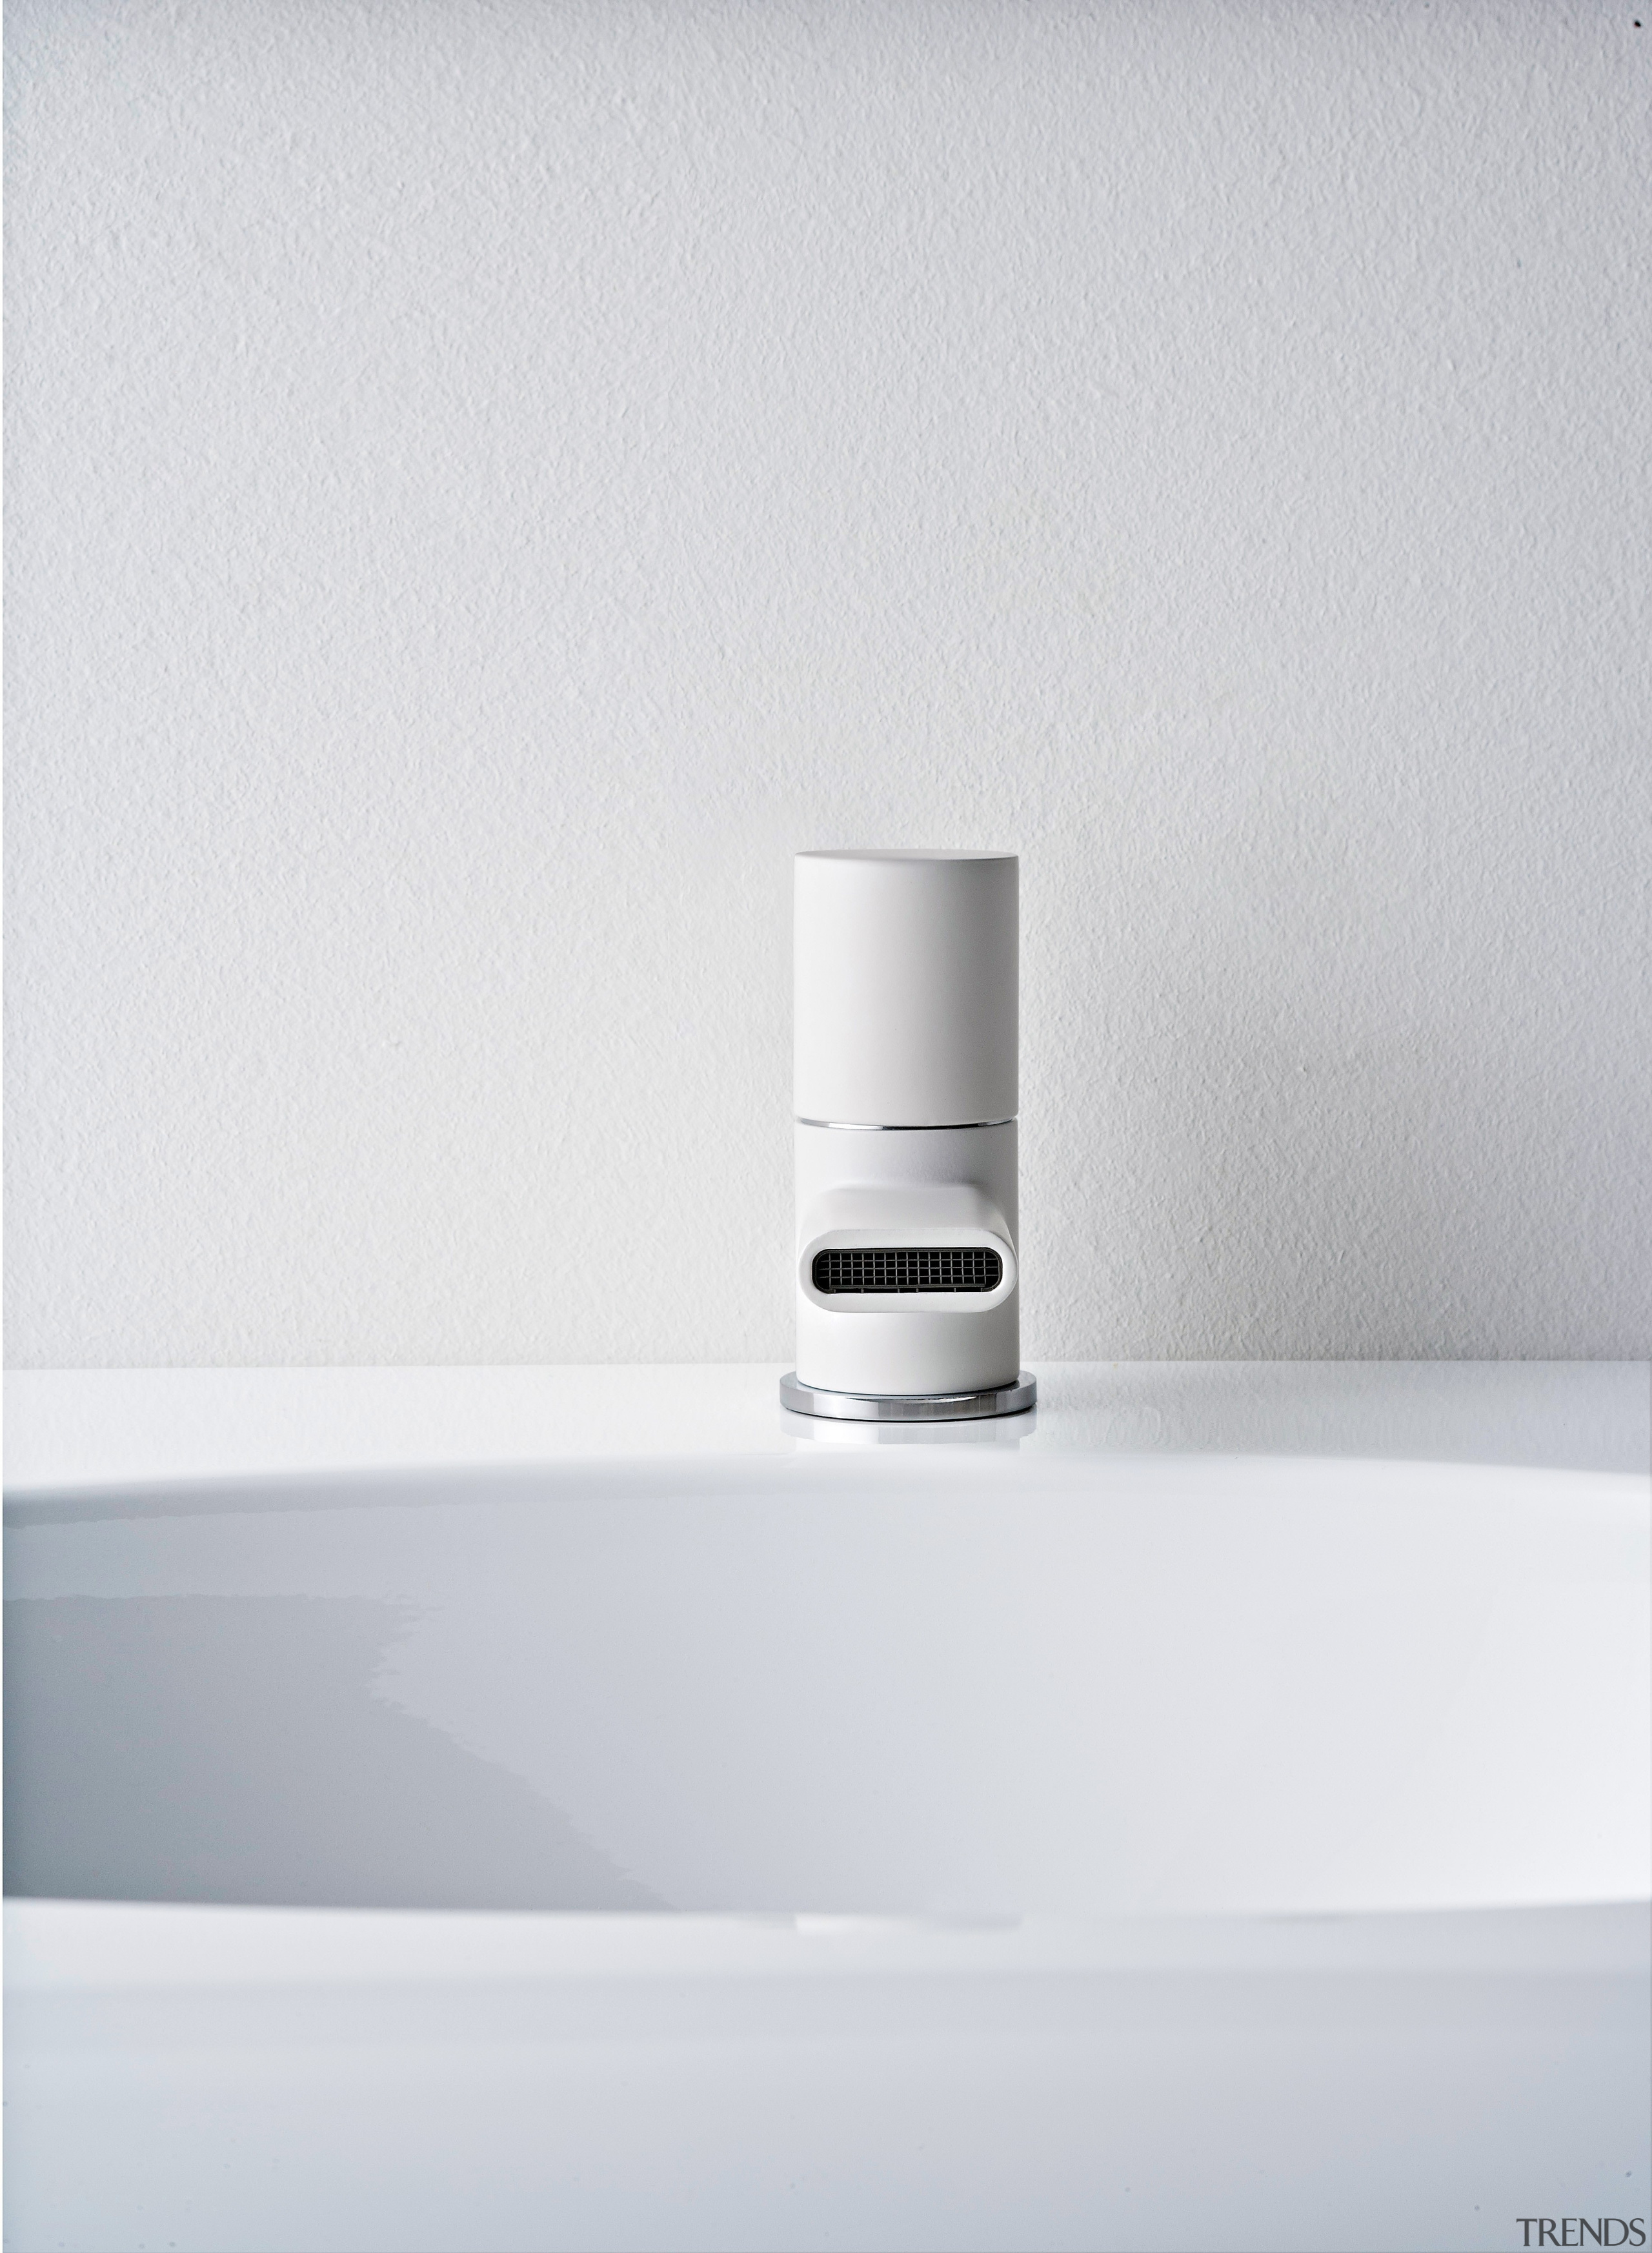 Trenz is proud to introduce our new range product, product design, tap, white